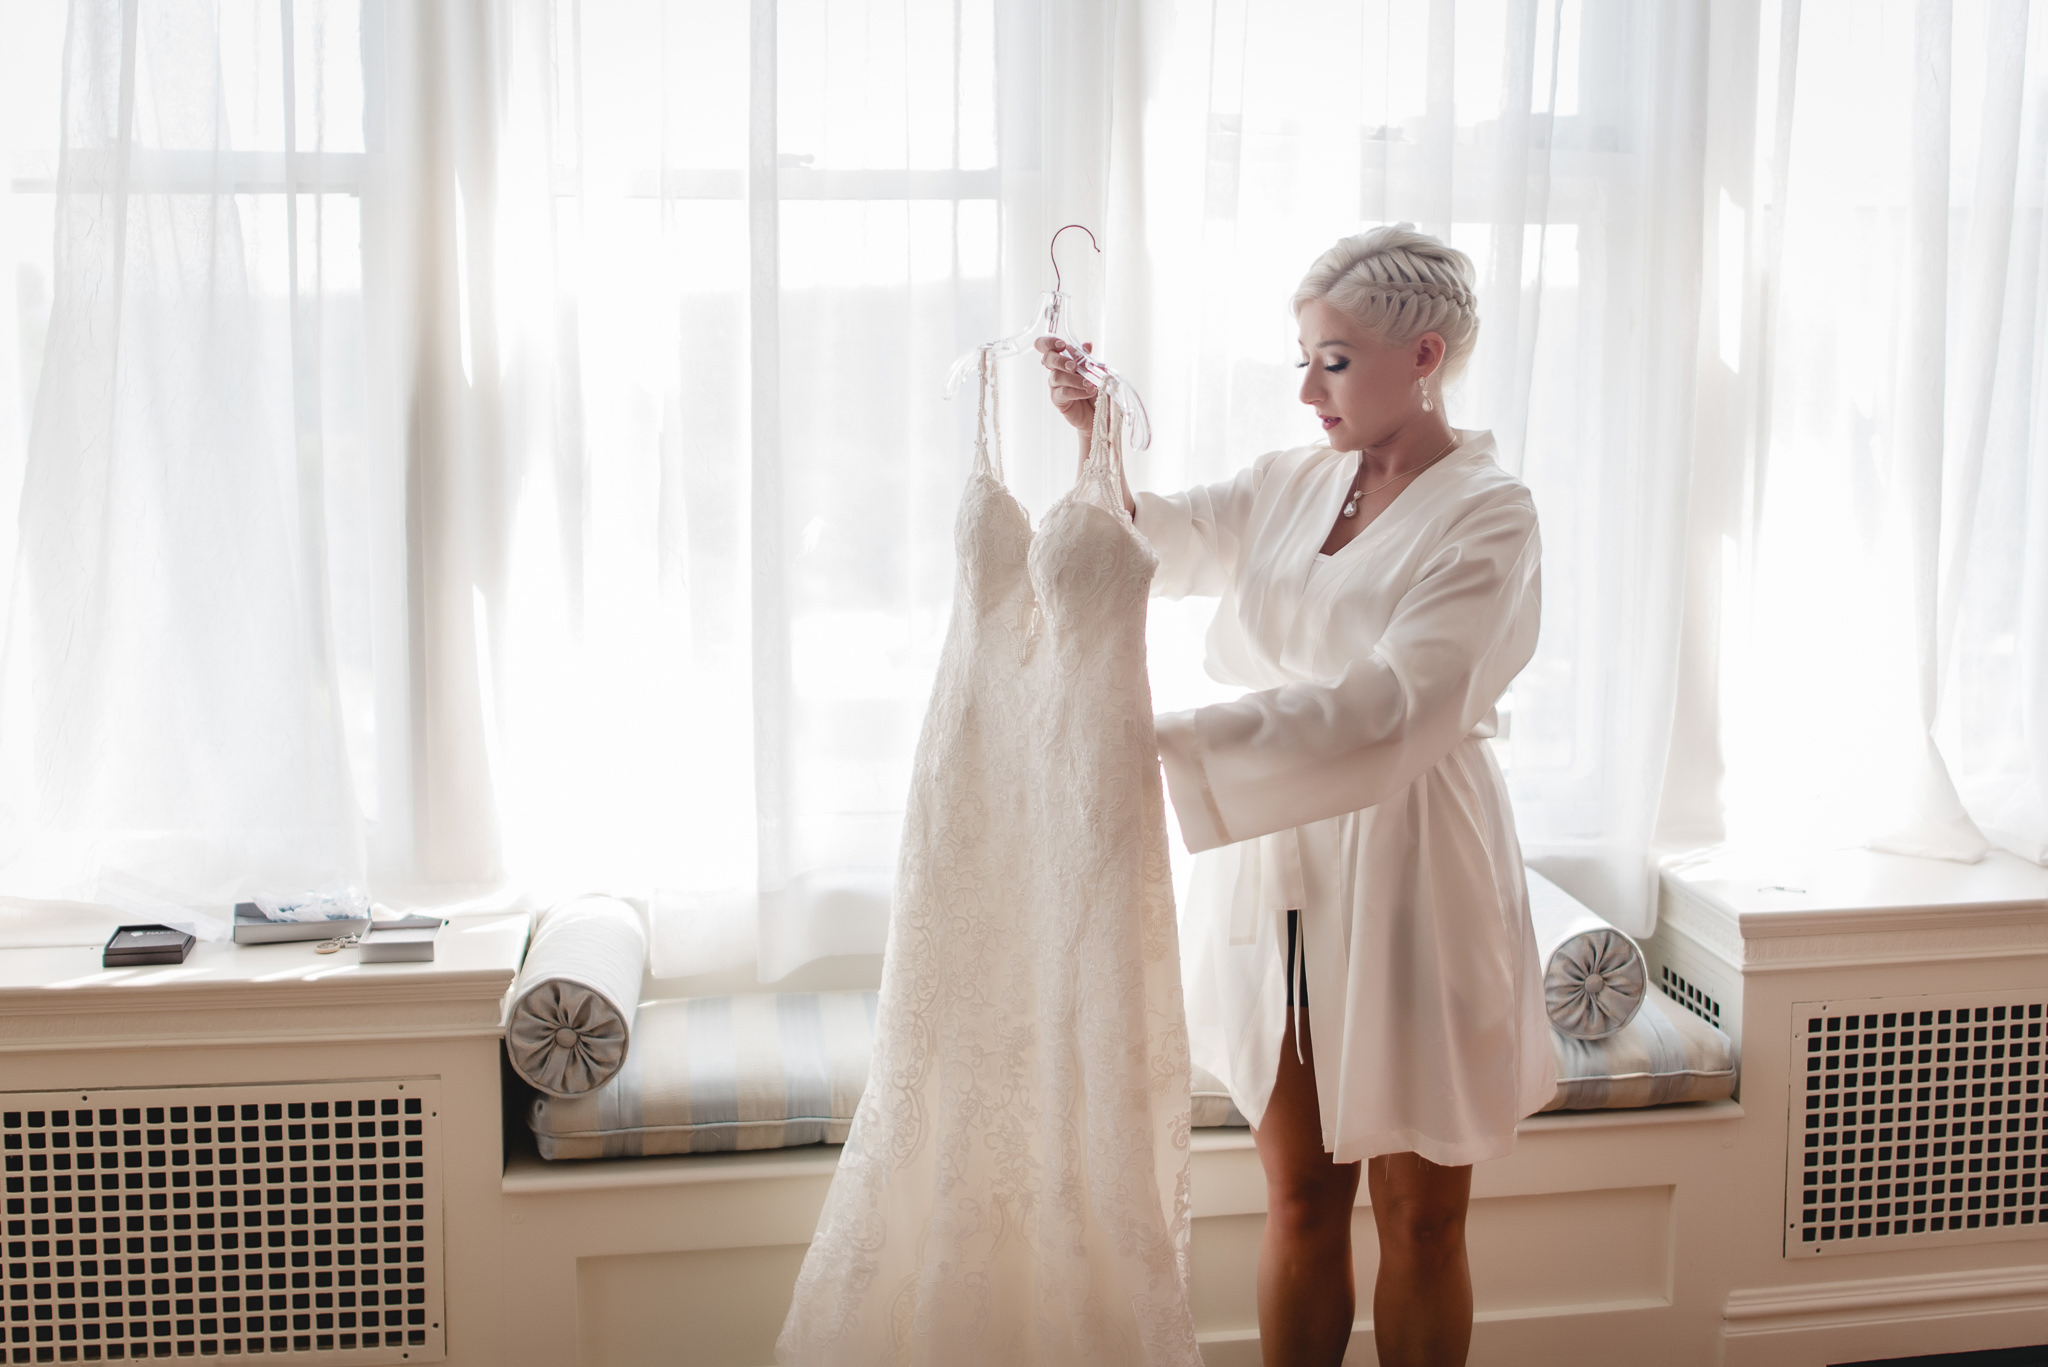 Bride getting her wedding dress ready to put on